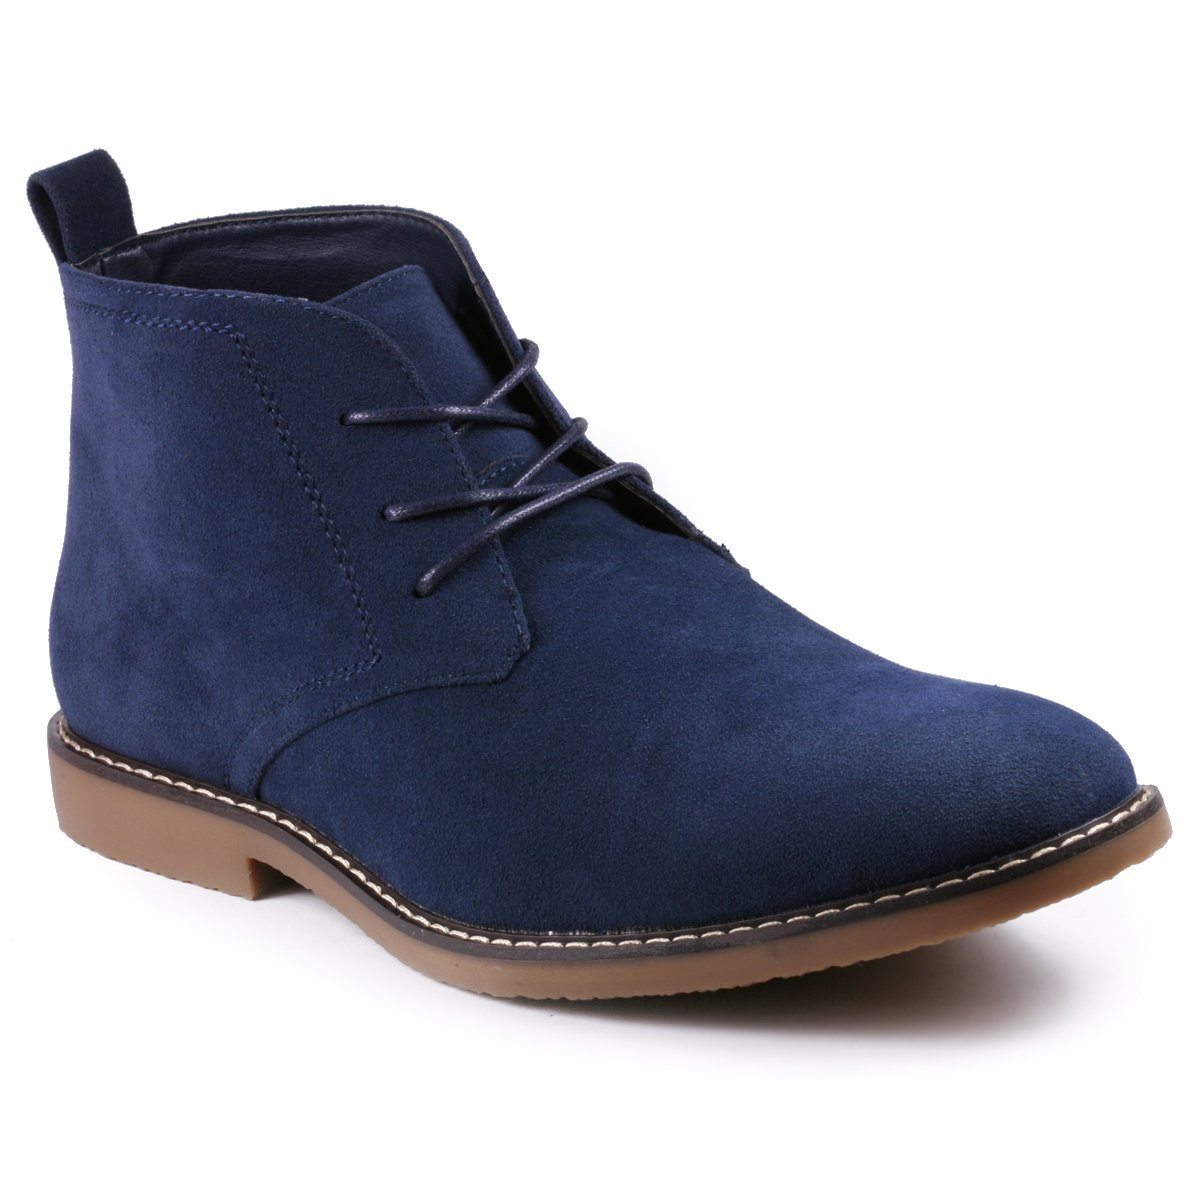 Metrocharm MC127 Mens Lace Up Casual Fashion Ankle Chukka Boots